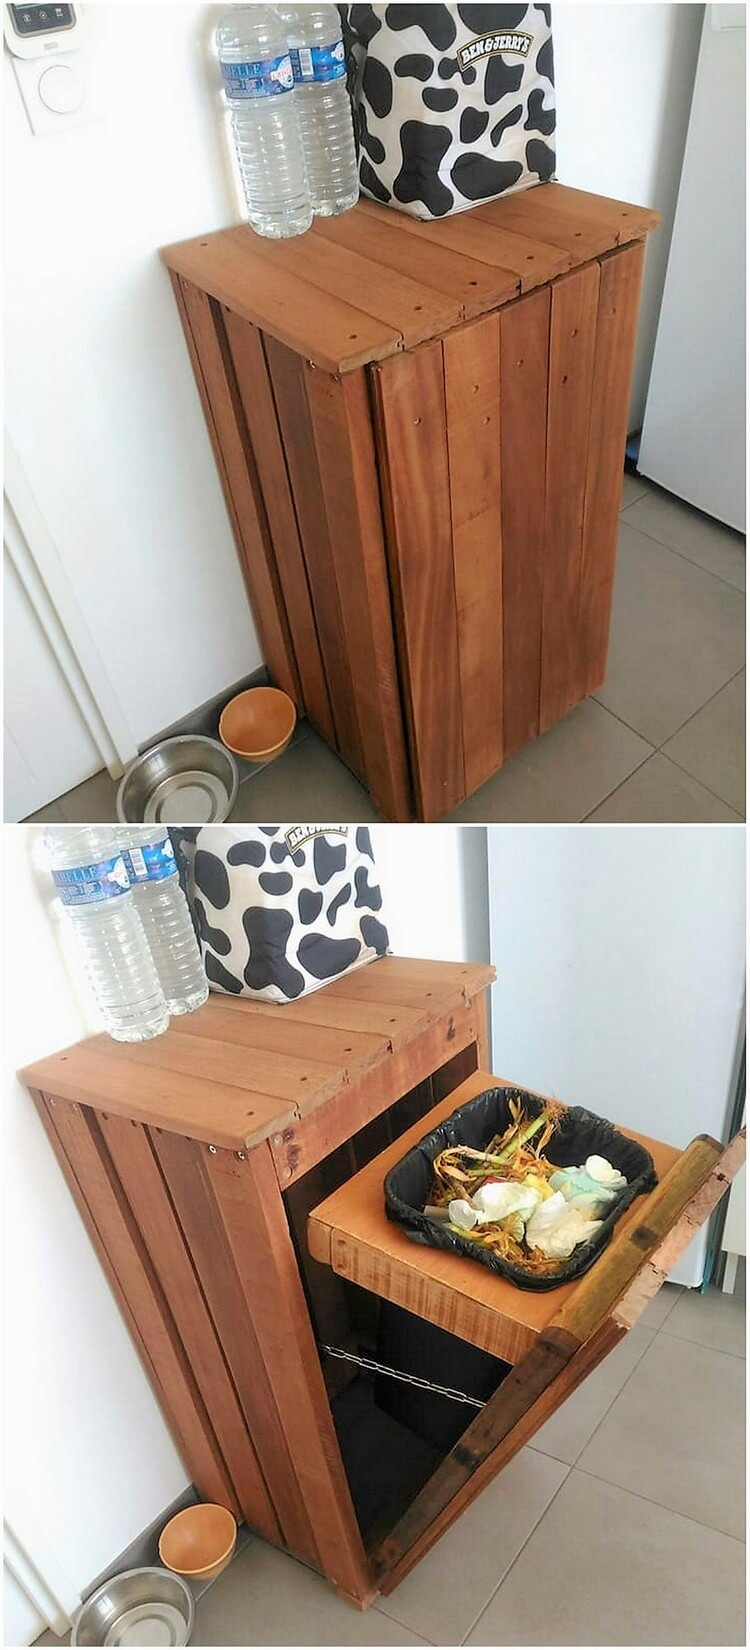 Useful DIY Ideas for Wood Pallet Recycling